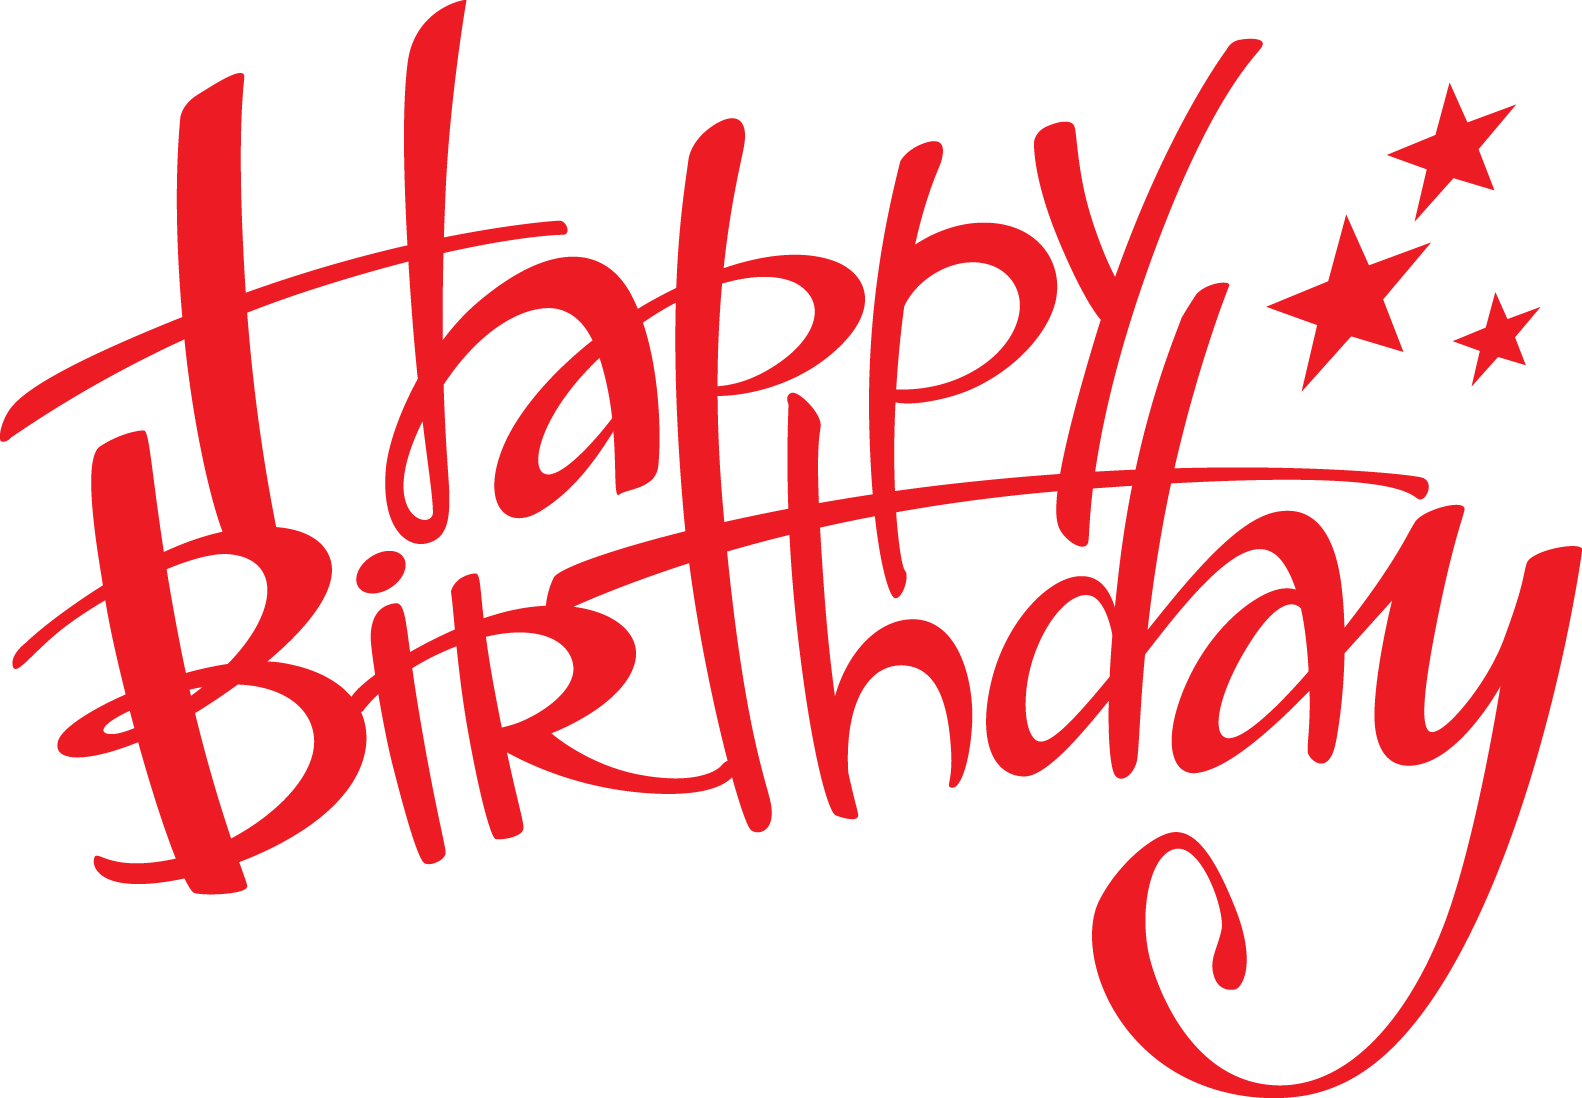 Birthday Words png 無料で使える寄せ書きデザイン 文字・文章・数字 Quotes